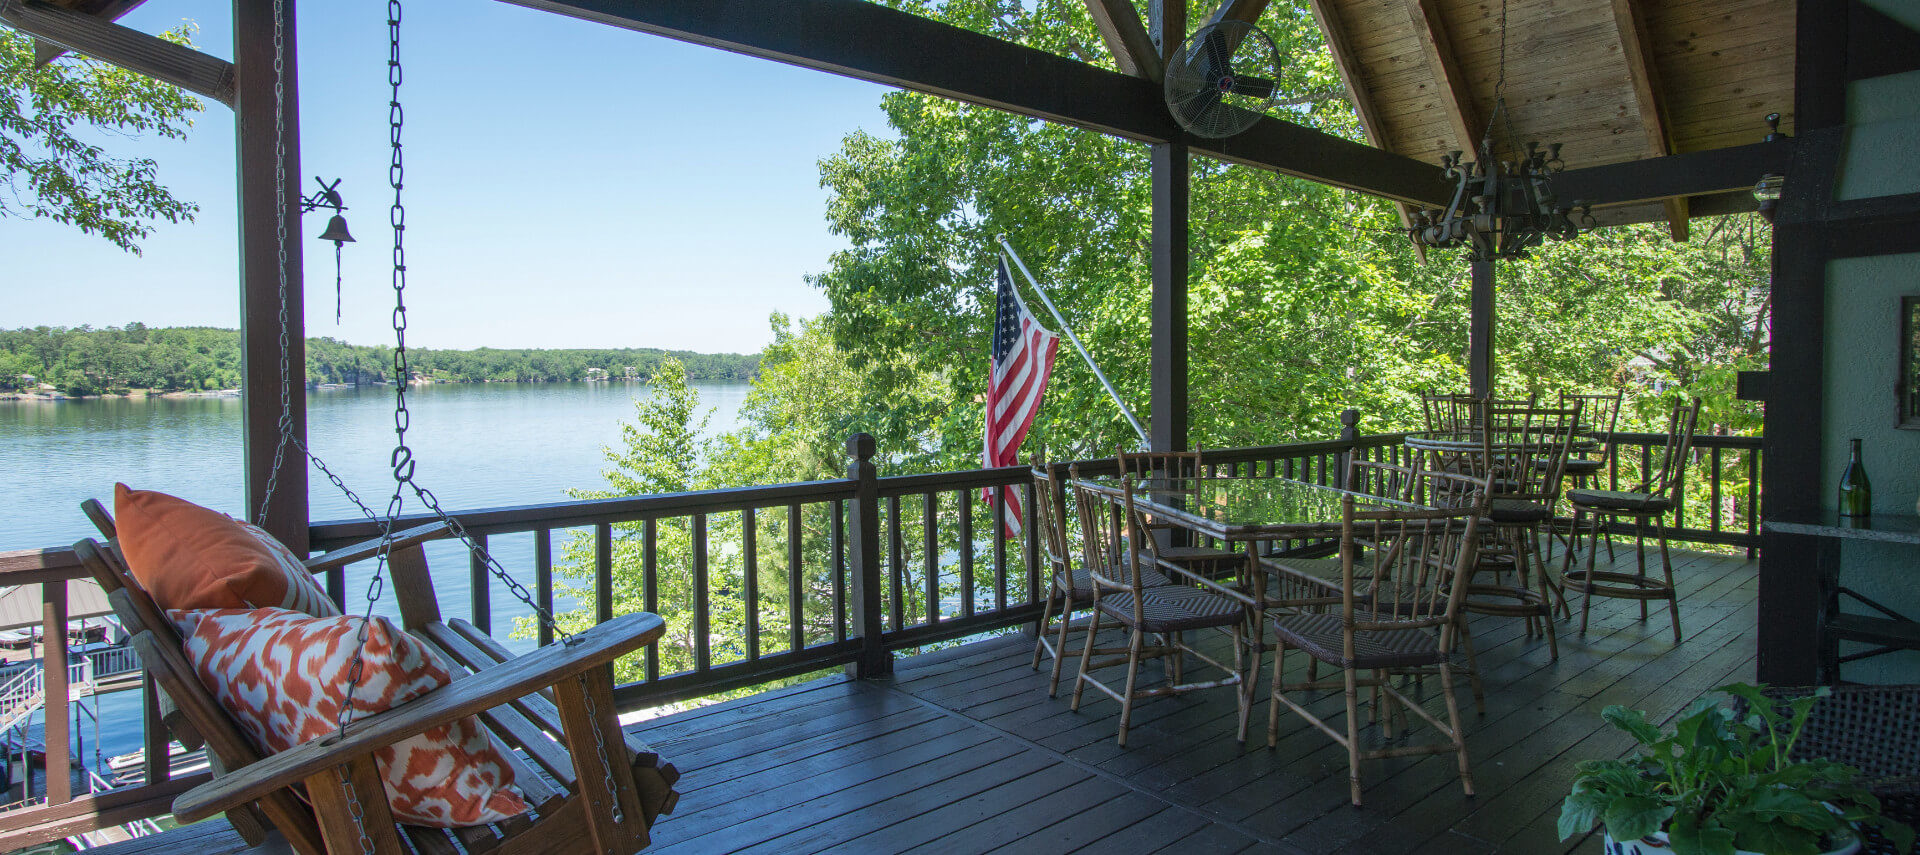 View of lake from deck with wooden tables and a rafter ceiling roof.